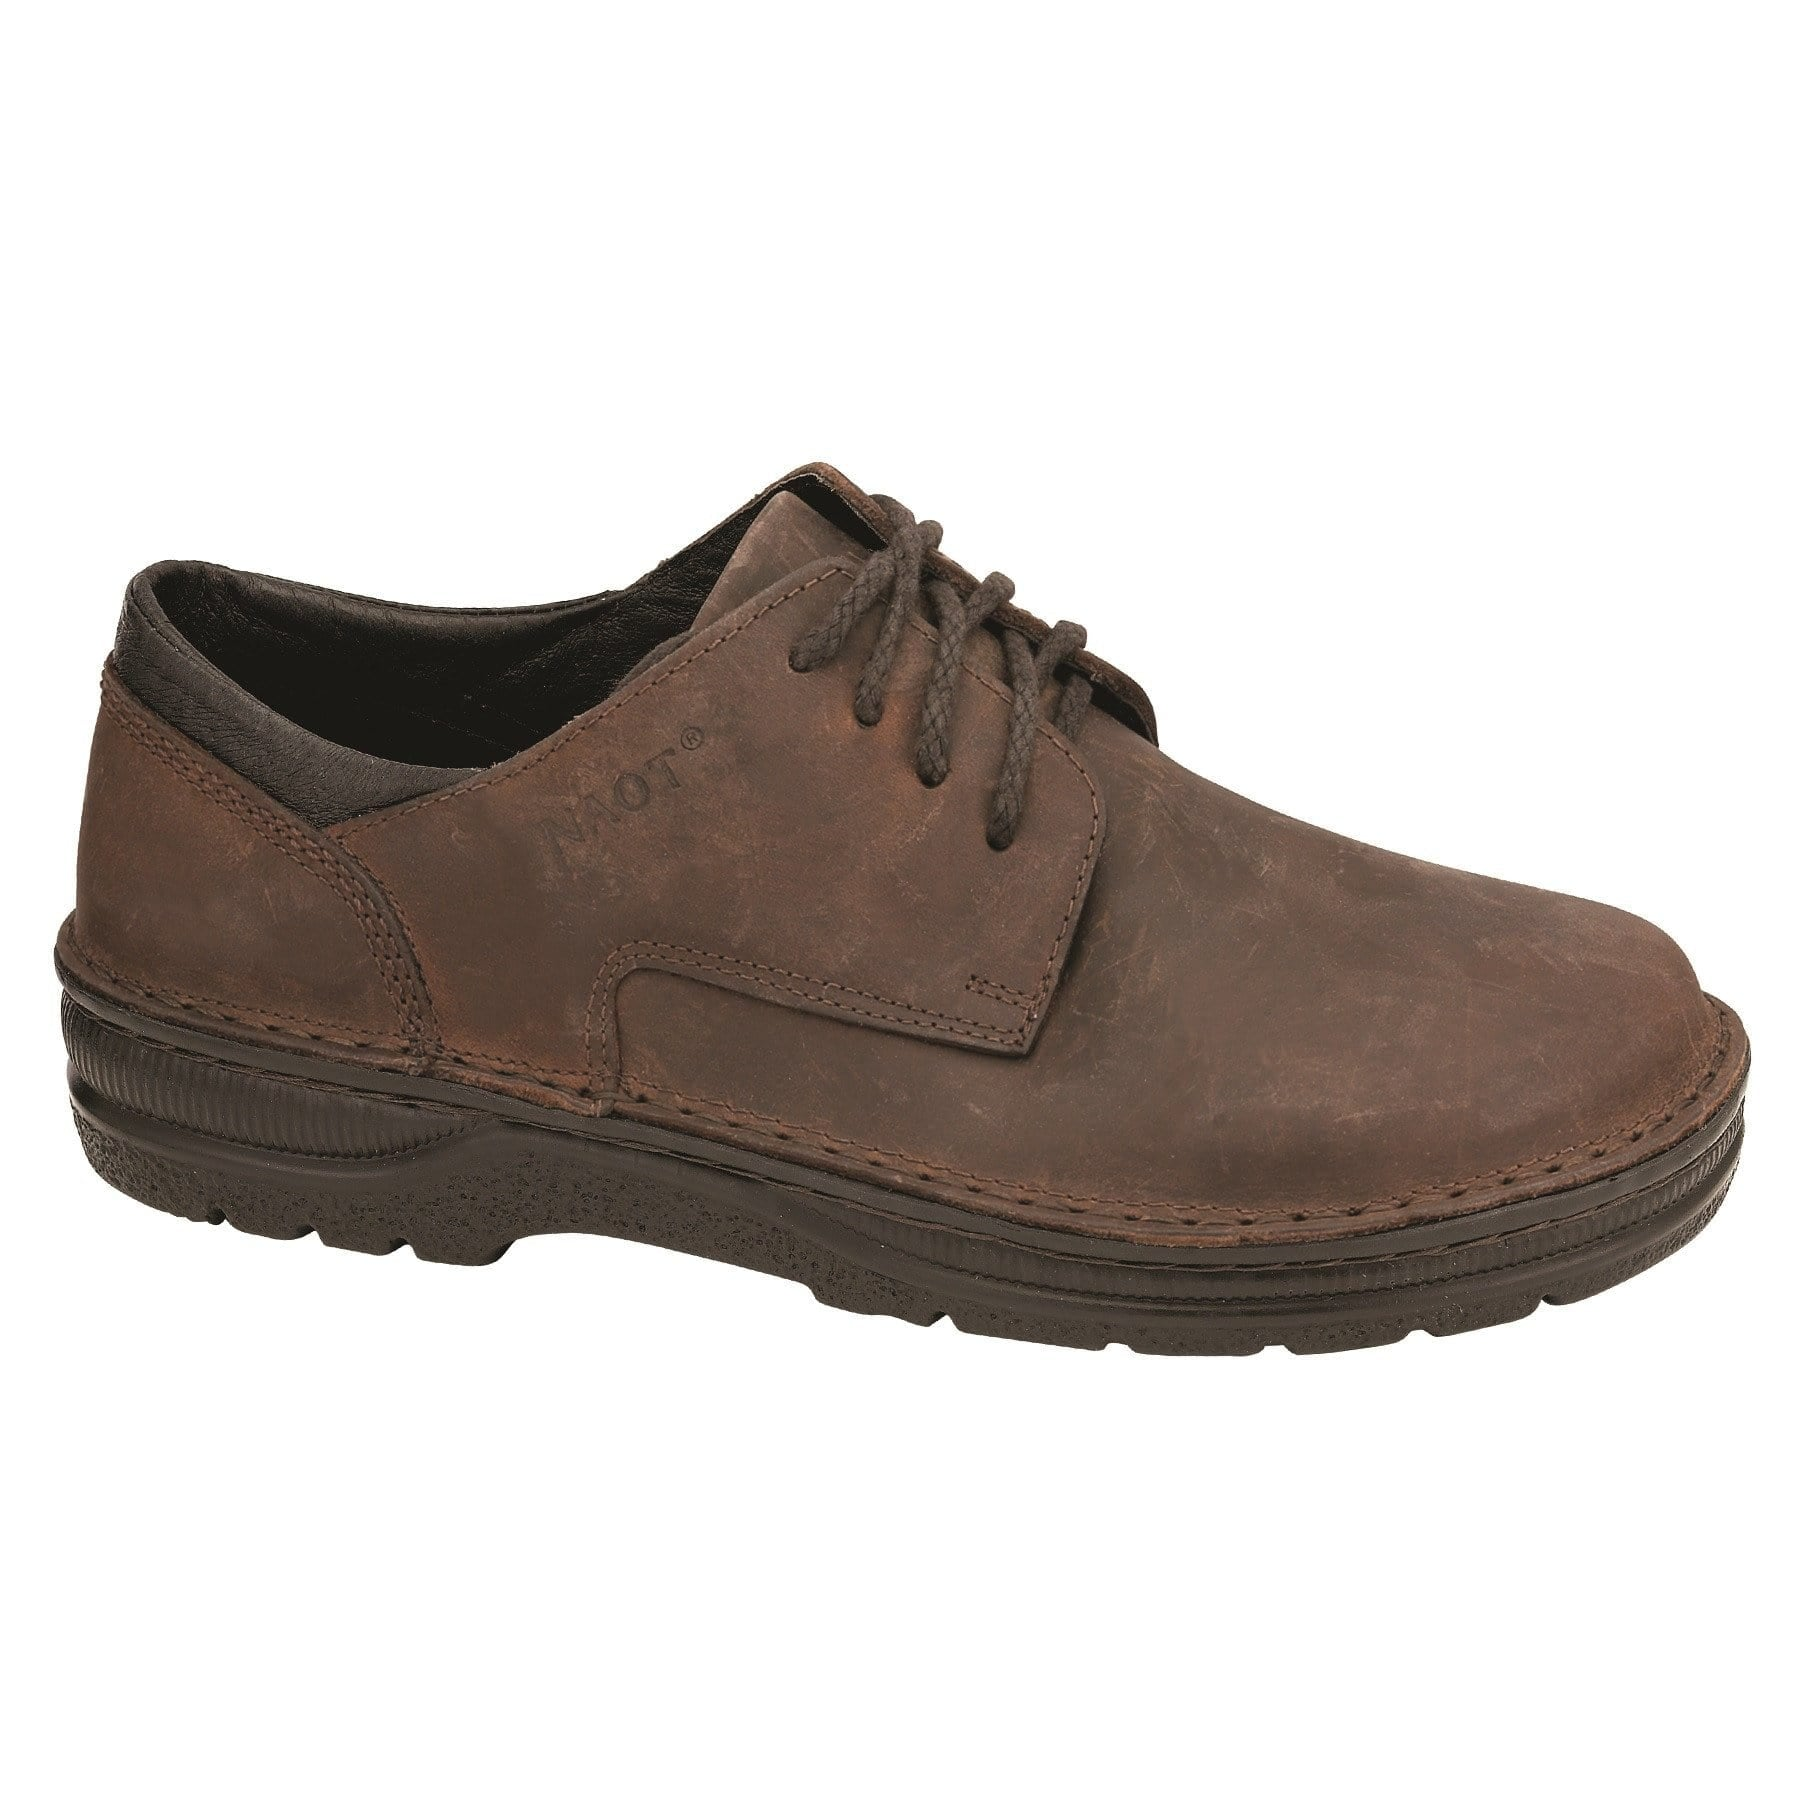 Denali Men's Shoe